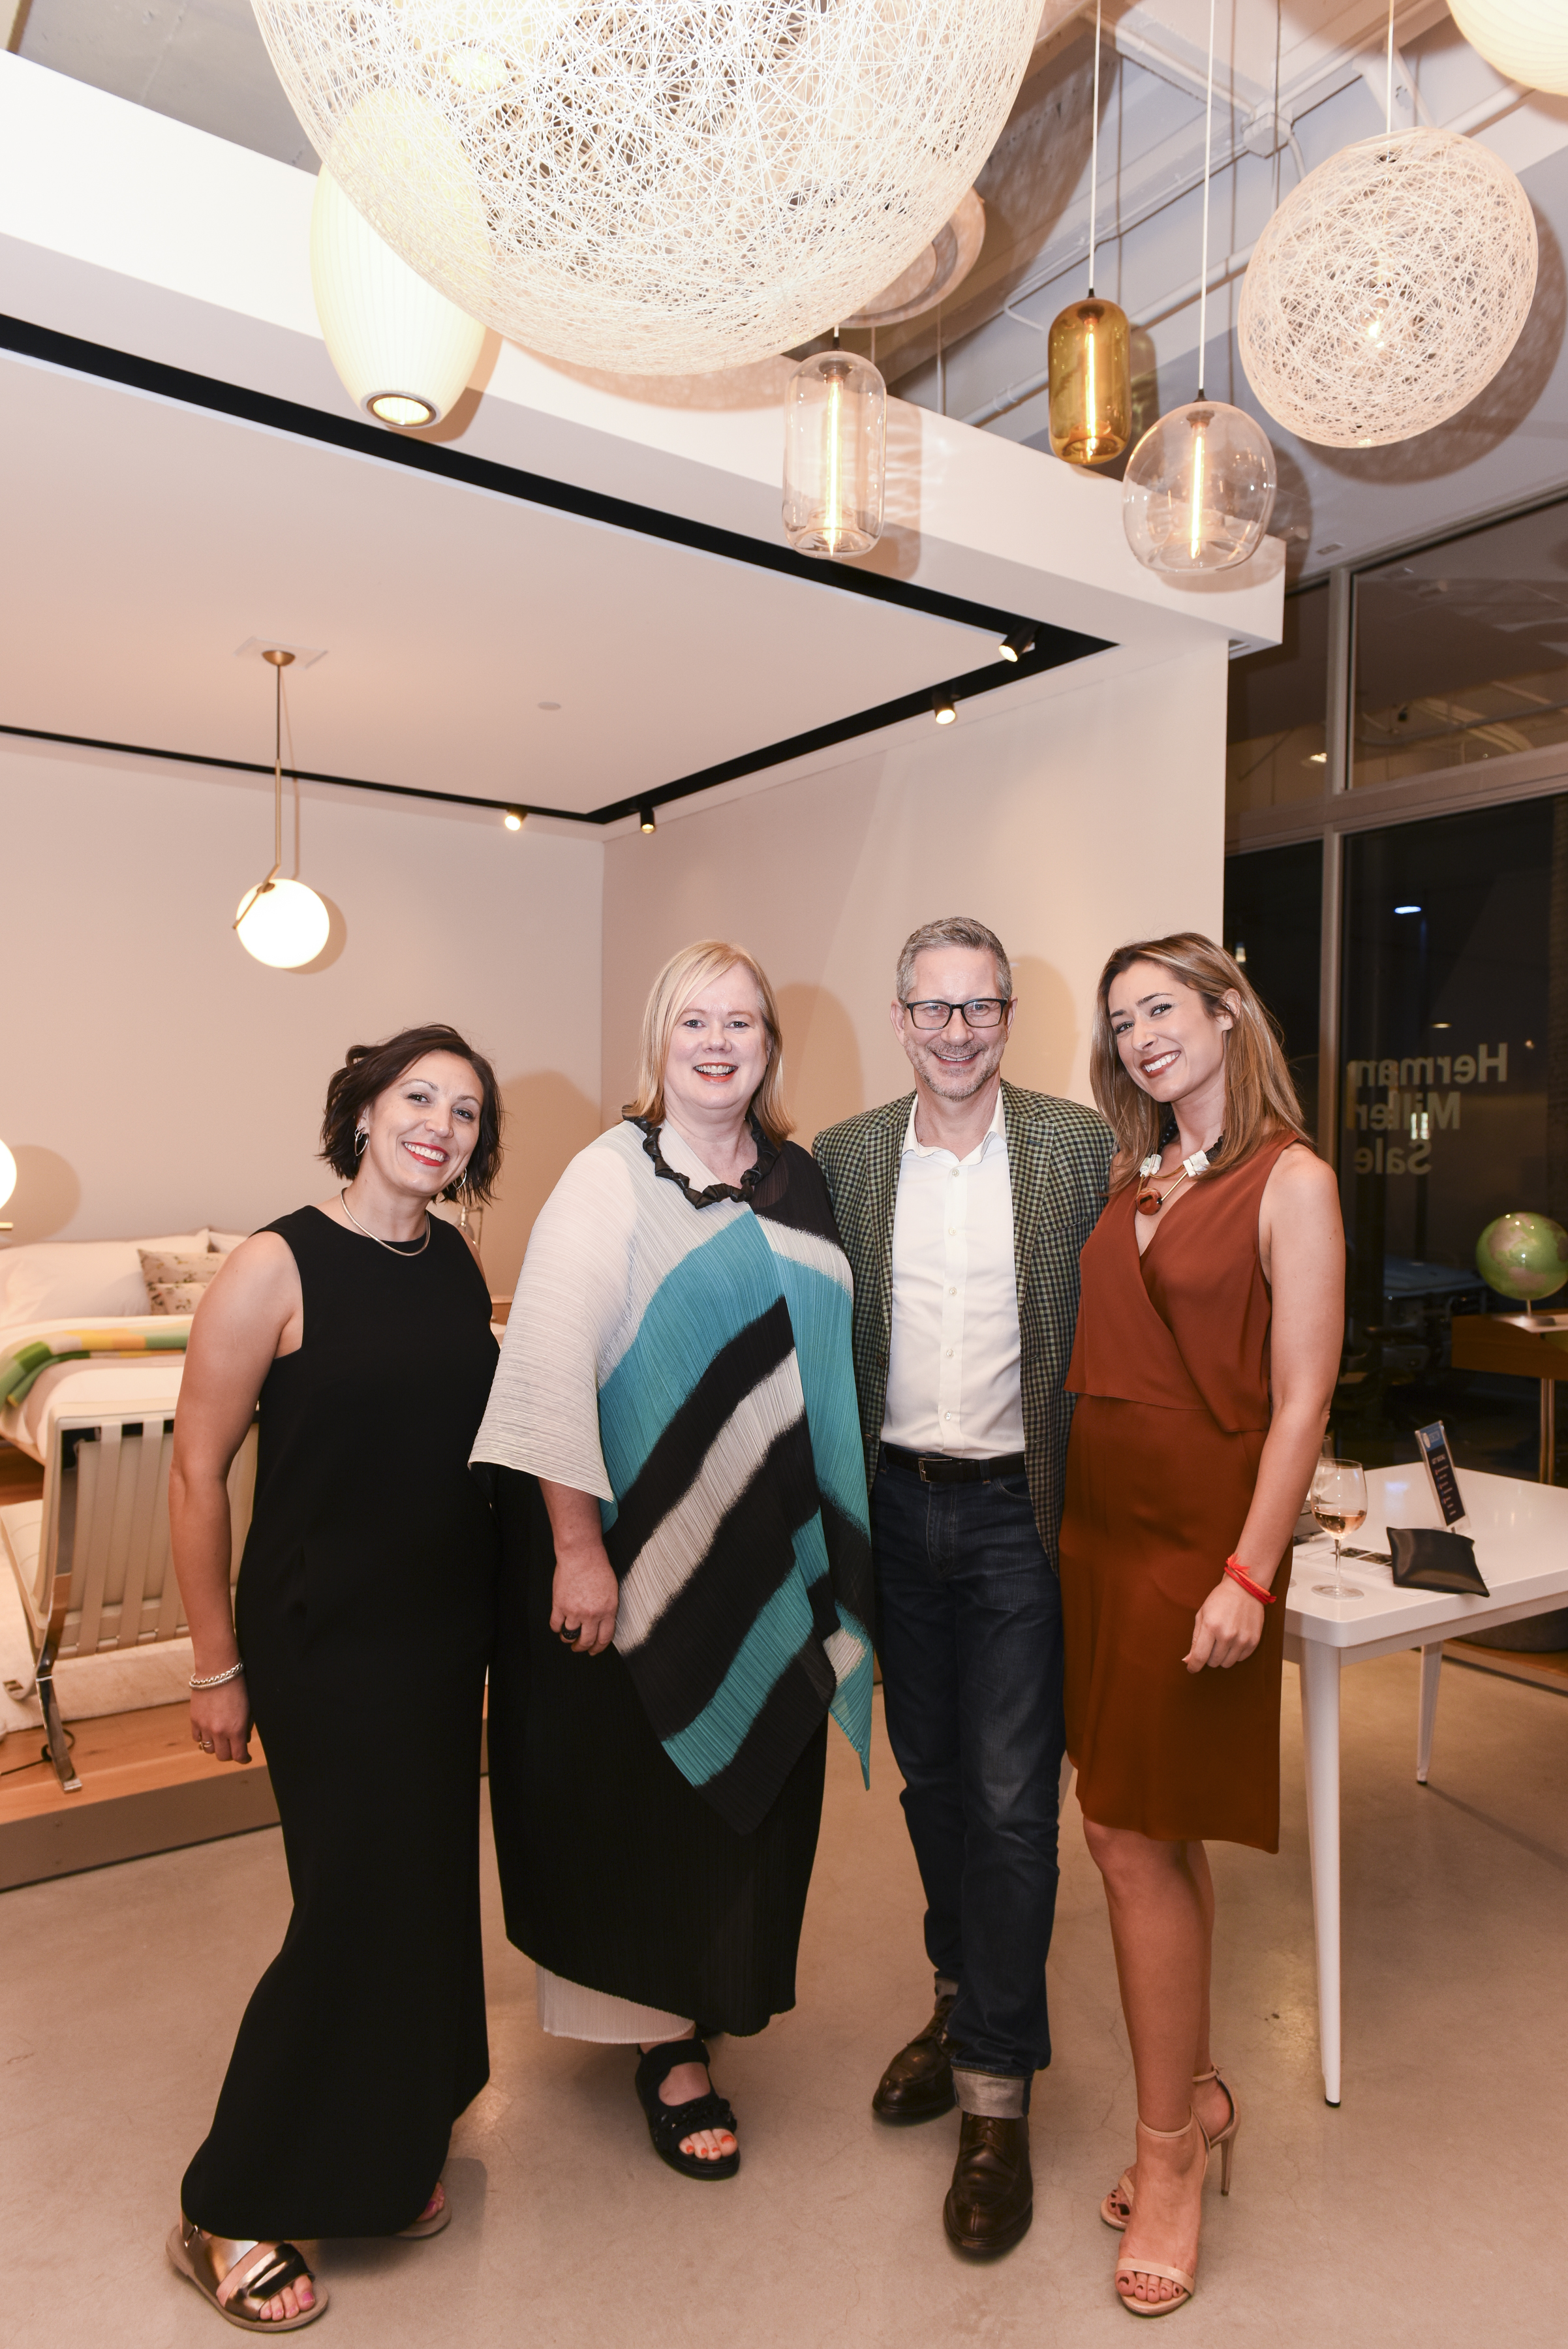 DWR's Kim Phillips, Sandra Hansel, and Vienna Bandur with Elle Decor's Michael Boodro